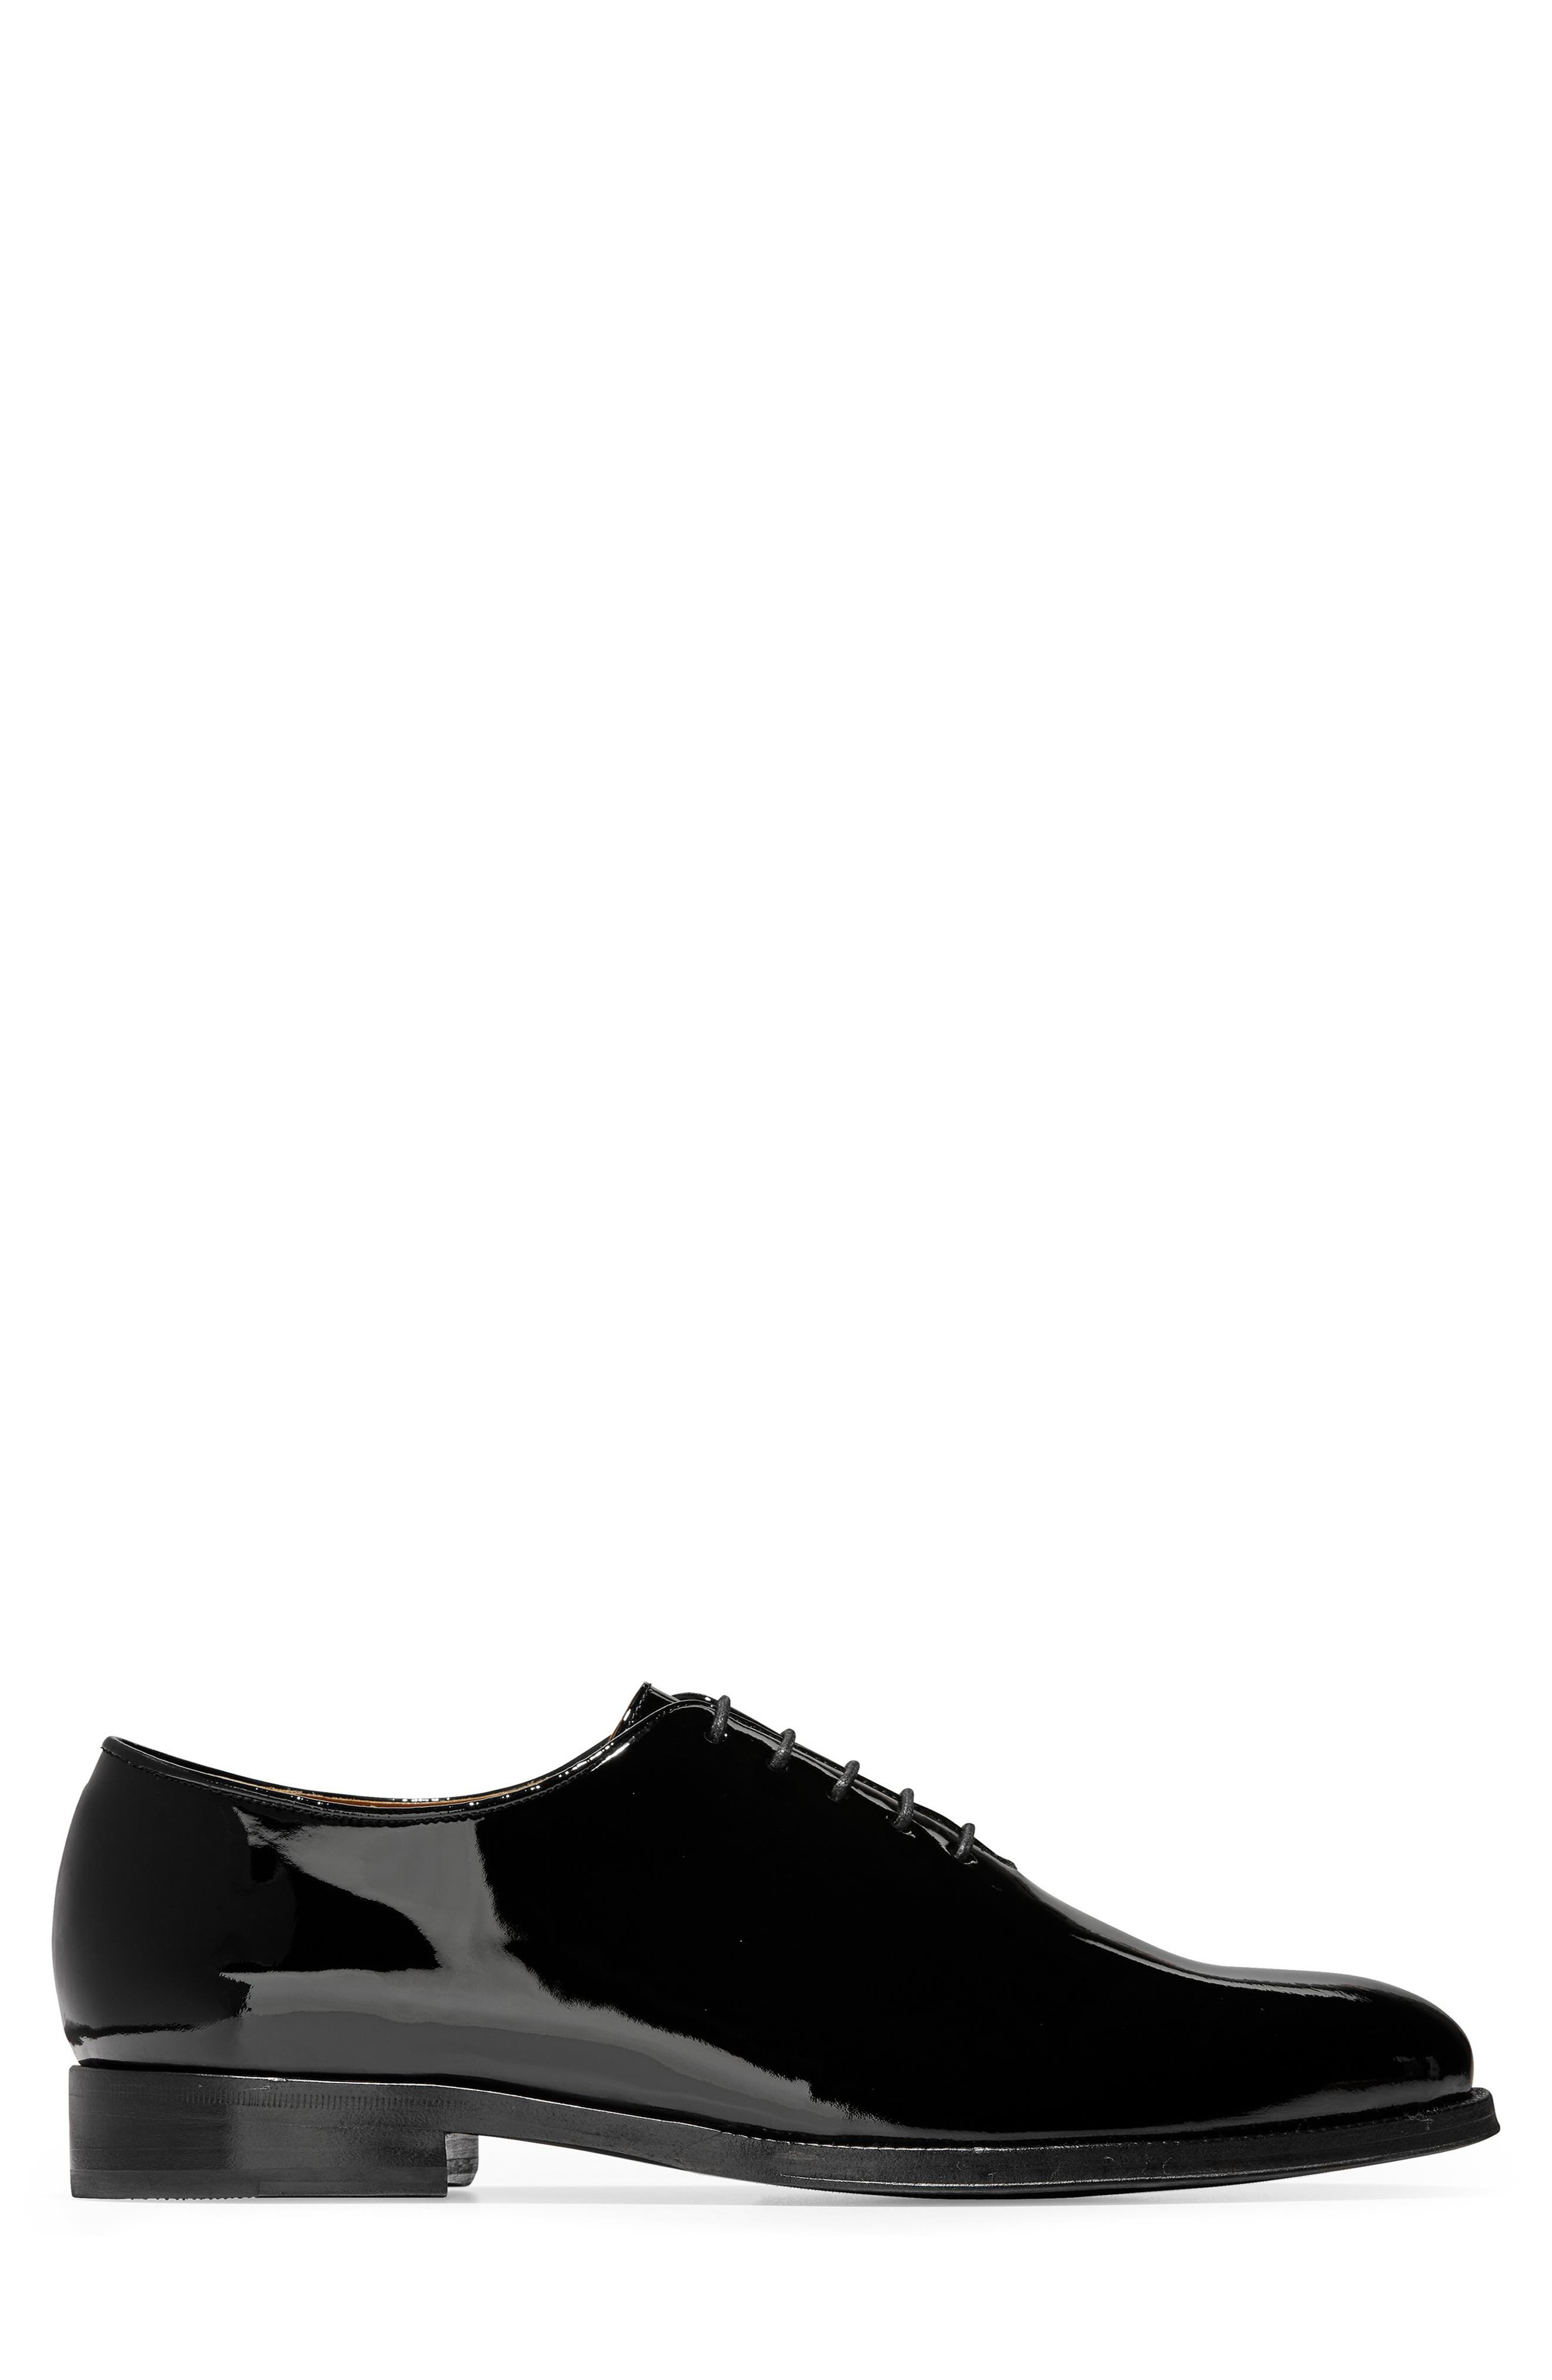 American Classics Grammercy Whole Cut Shoe,                             Alternate thumbnail 3, color,                             BLACK PATENT LEATHER